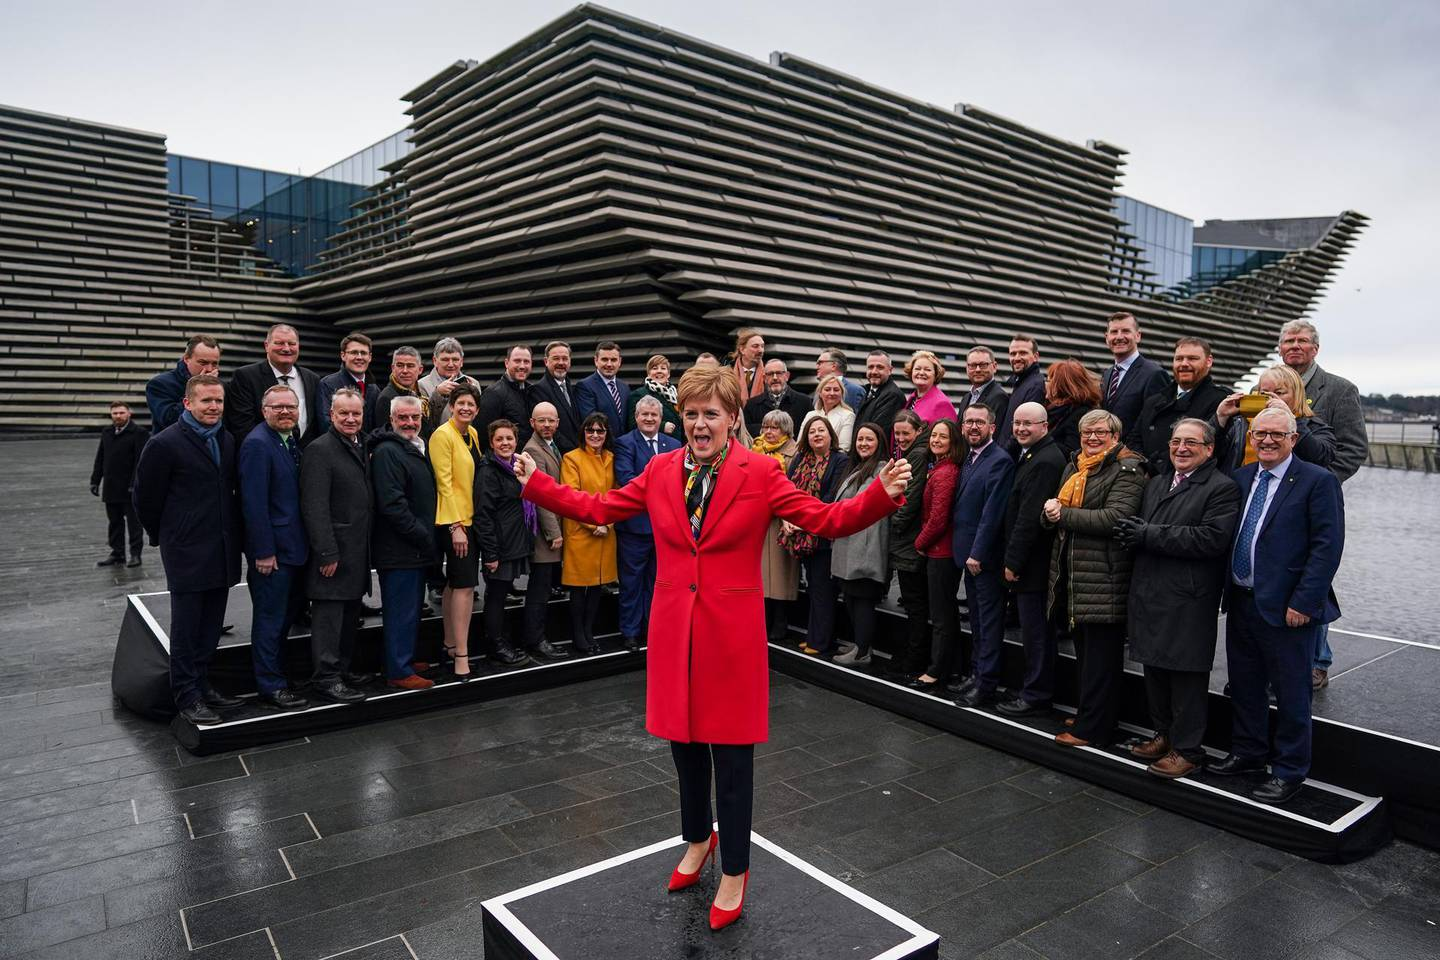 """DUNDEE, SCOTLAND - DECEMBER 14: First Minister, Nicola Sturgeon, joins the SNPs newly elected MPs for a group photo outside the V&A Museum on December 14, 2019 in Glasgow, Scotland.The Scottish National Party (SNP) won 48 out of a possible 59 Westminster seats in the UK general election. Leader of the SNP, Nicola Sturgeon said the win is a """"mandate for Indyref2"""" to decide if Scotland remains part of the United Kingdom. (Photo by Jeff J Mitchell/Getty Images)"""